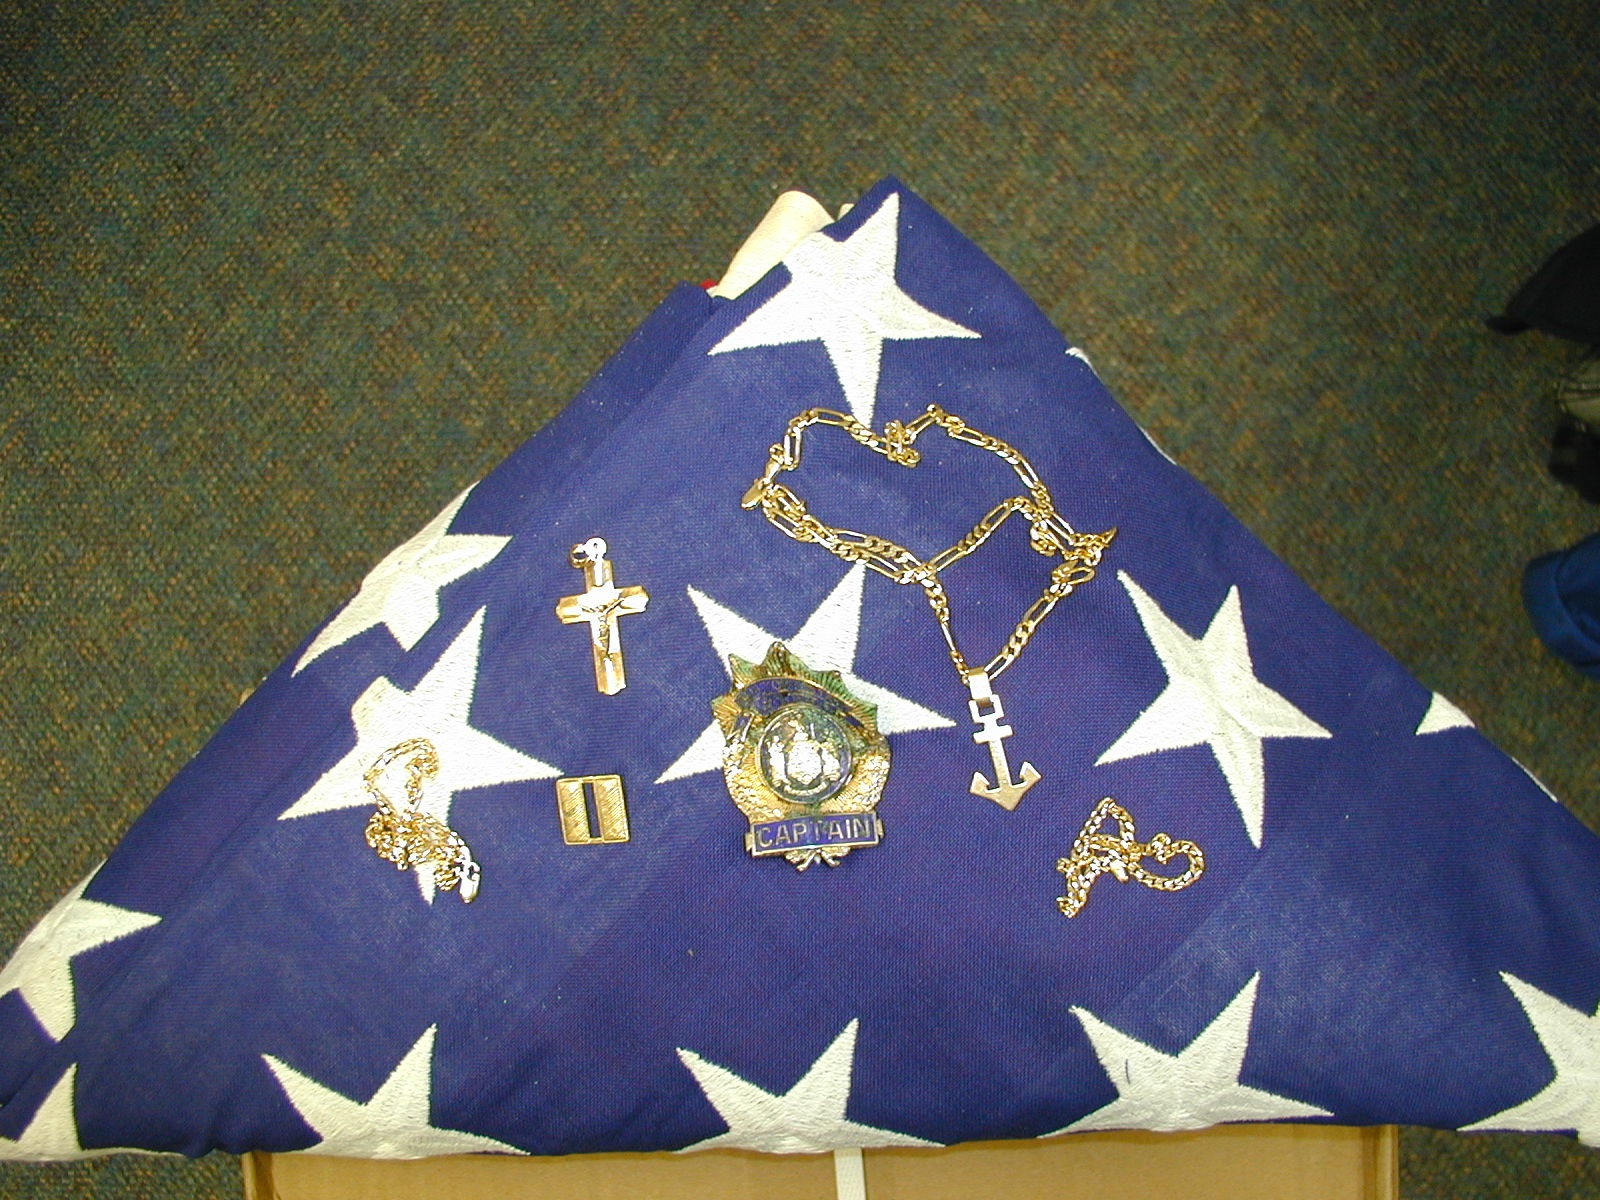 The flag that draped Captain William Harry Thompson's body when he was taken from Ground Zero and his official shield and the jewelry that was recovered with him. Photo courtesy of Joseph Baccellieri.